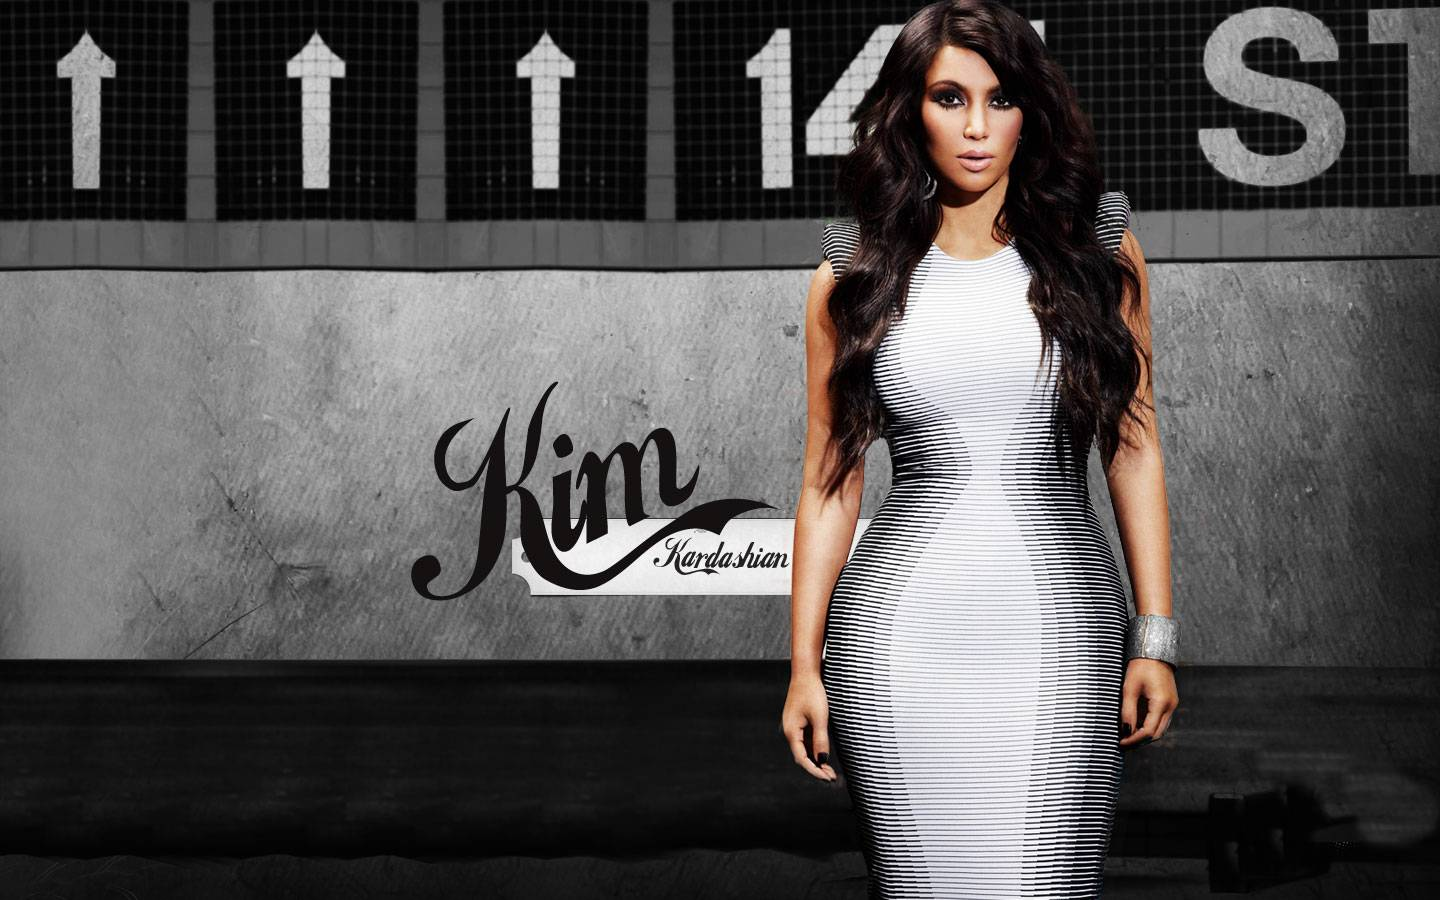 Sweet Kim Kardashian Latest HD Wallpapers Free Download